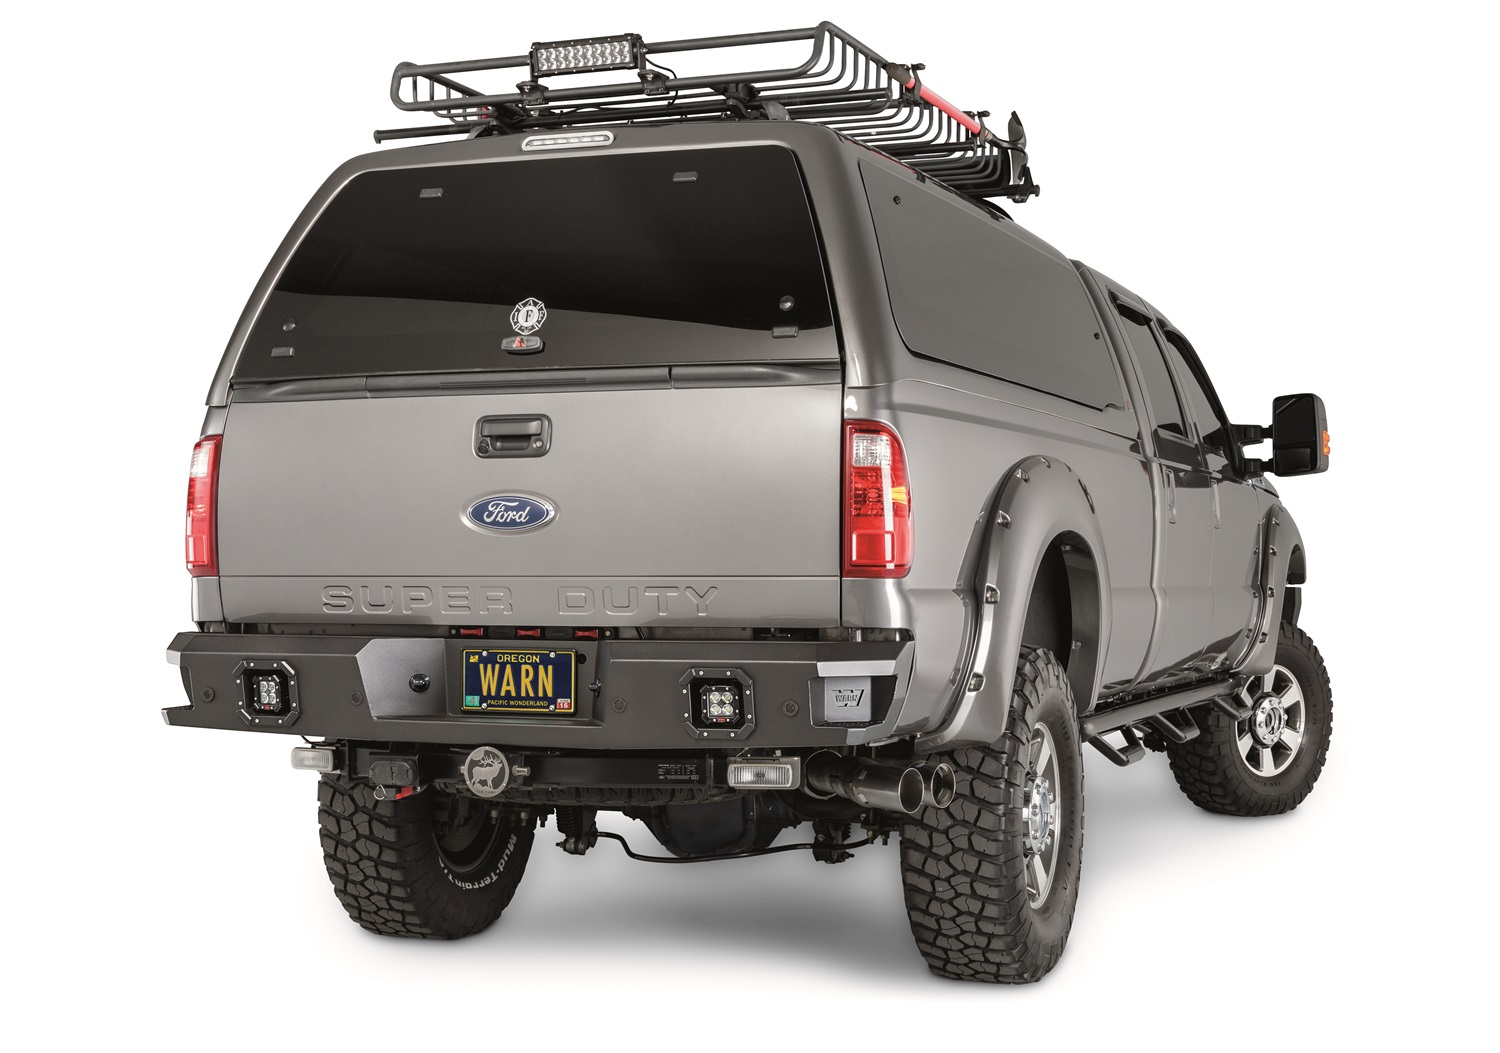 Warn 96290 Ascent Rear Bumper Fits 11-16 F-250 Super Duty F-350 Super Duty